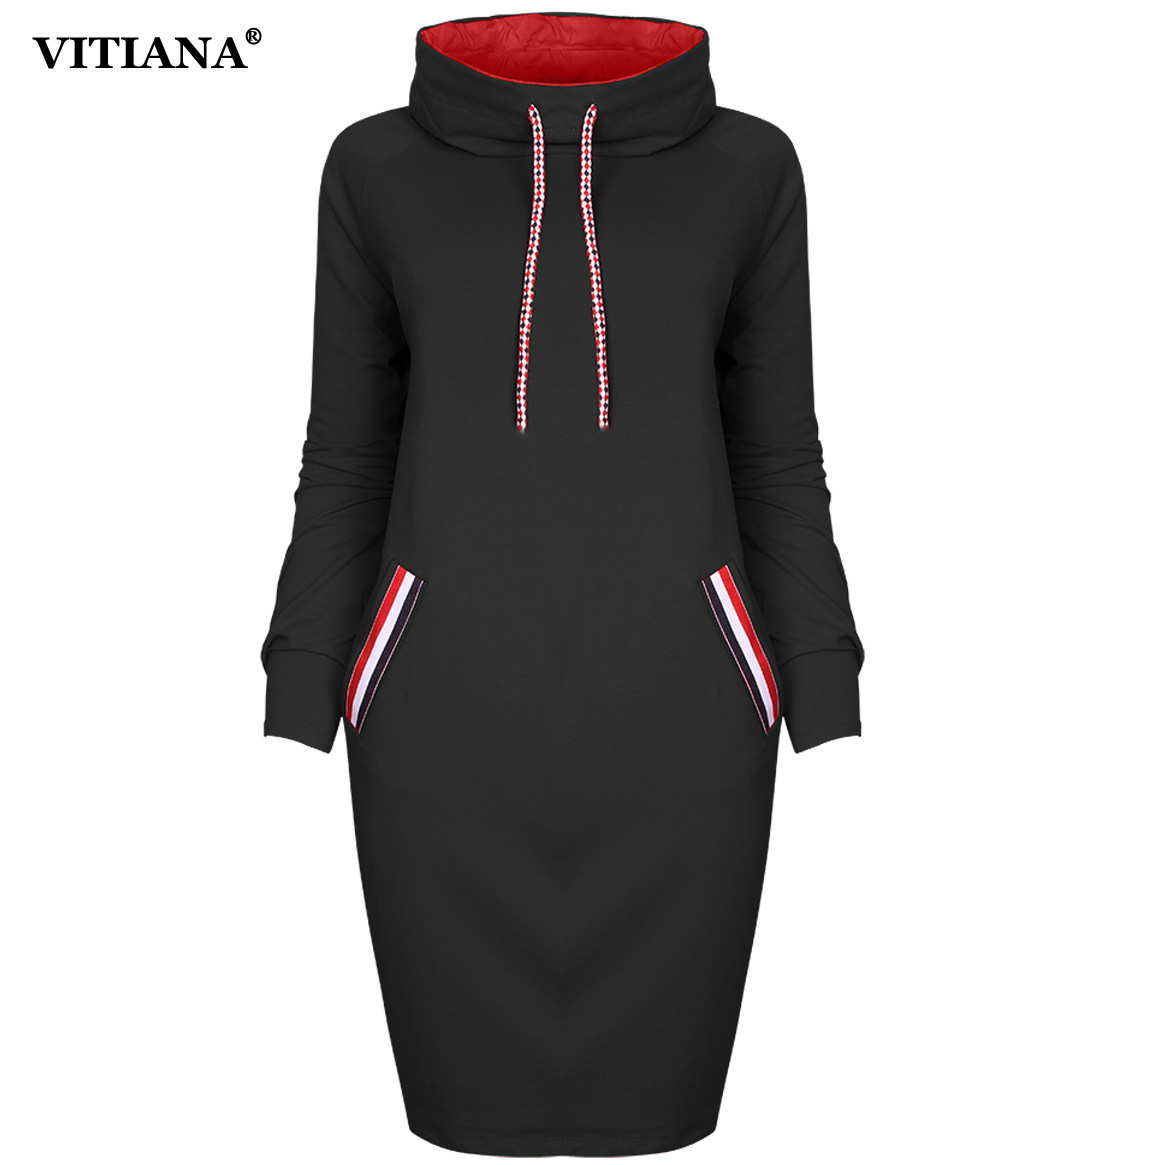 VITIANA Women Autumn Winter Long sleeve Dress Black Red Pullovers Winter Hoodie Dresses Female Elegant Knee length Thin Clothes